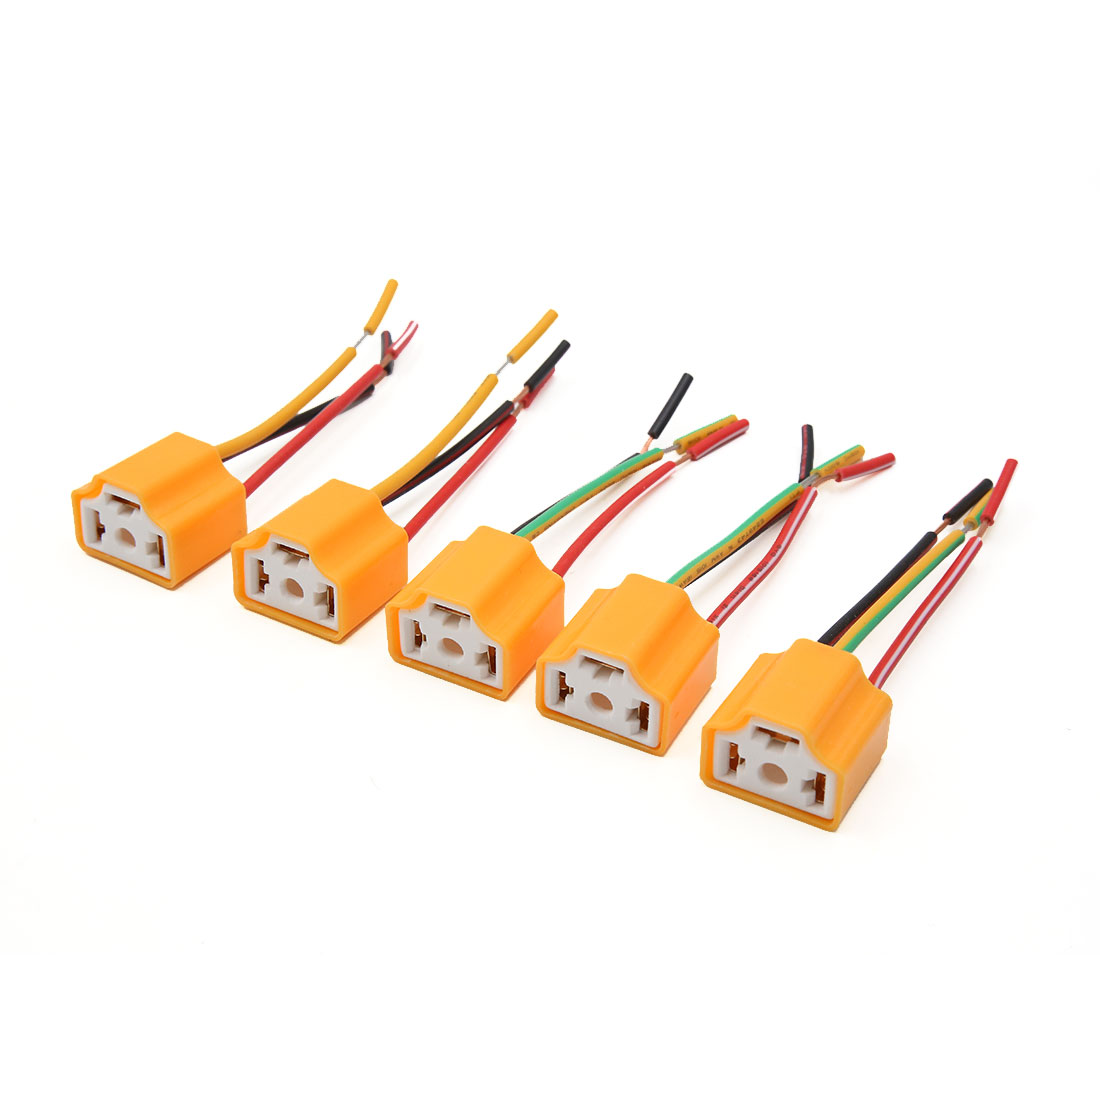 5 pcs orange h4 lamp wiring socket headlight harness connector for car walmart canada  [ 1100 x 1100 Pixel ]